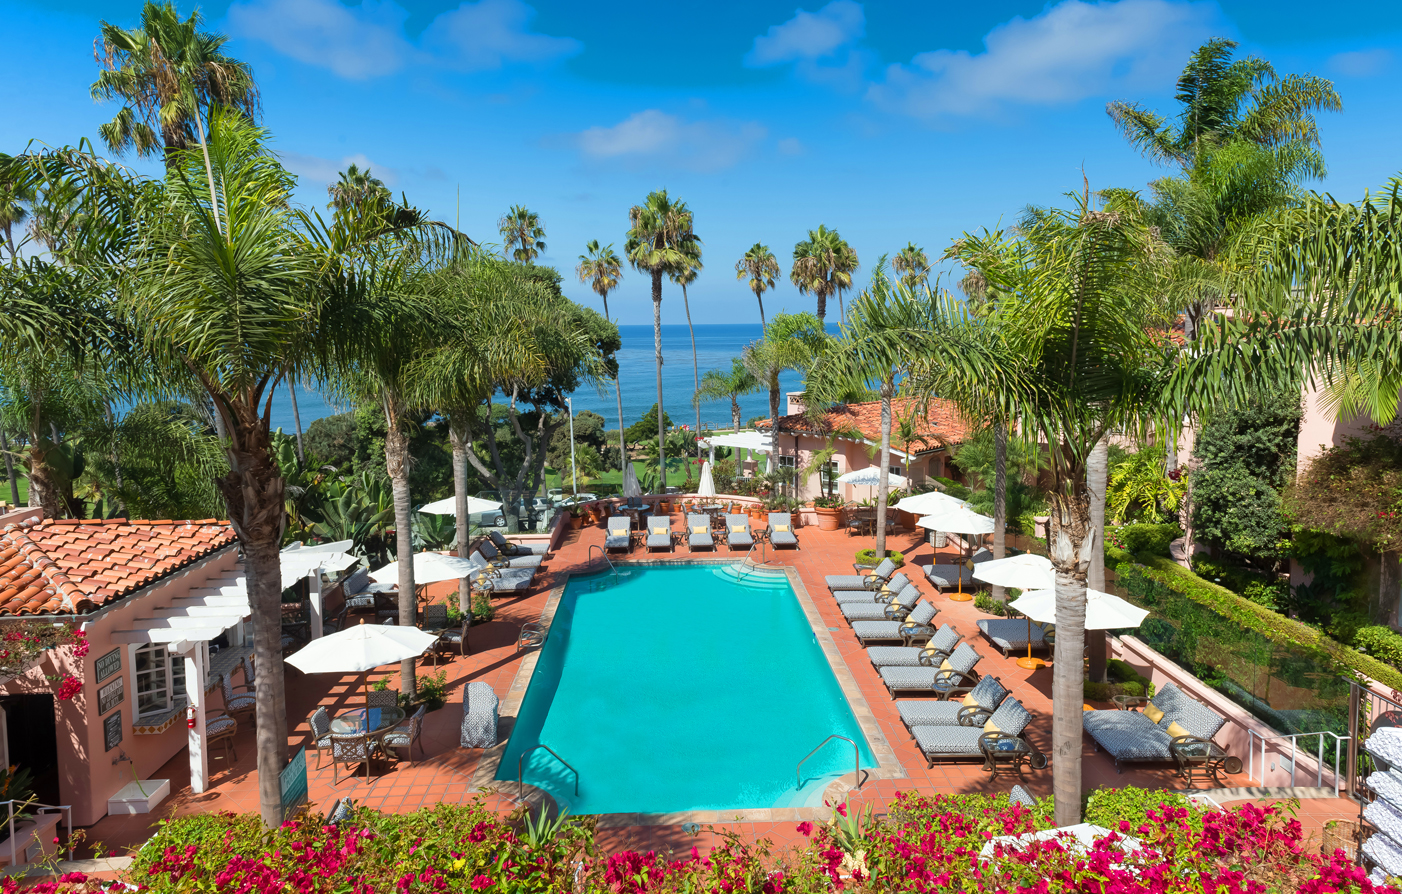 la valencia hotel in la jollasan diego - San Diego Luxury Hotels And Resorts